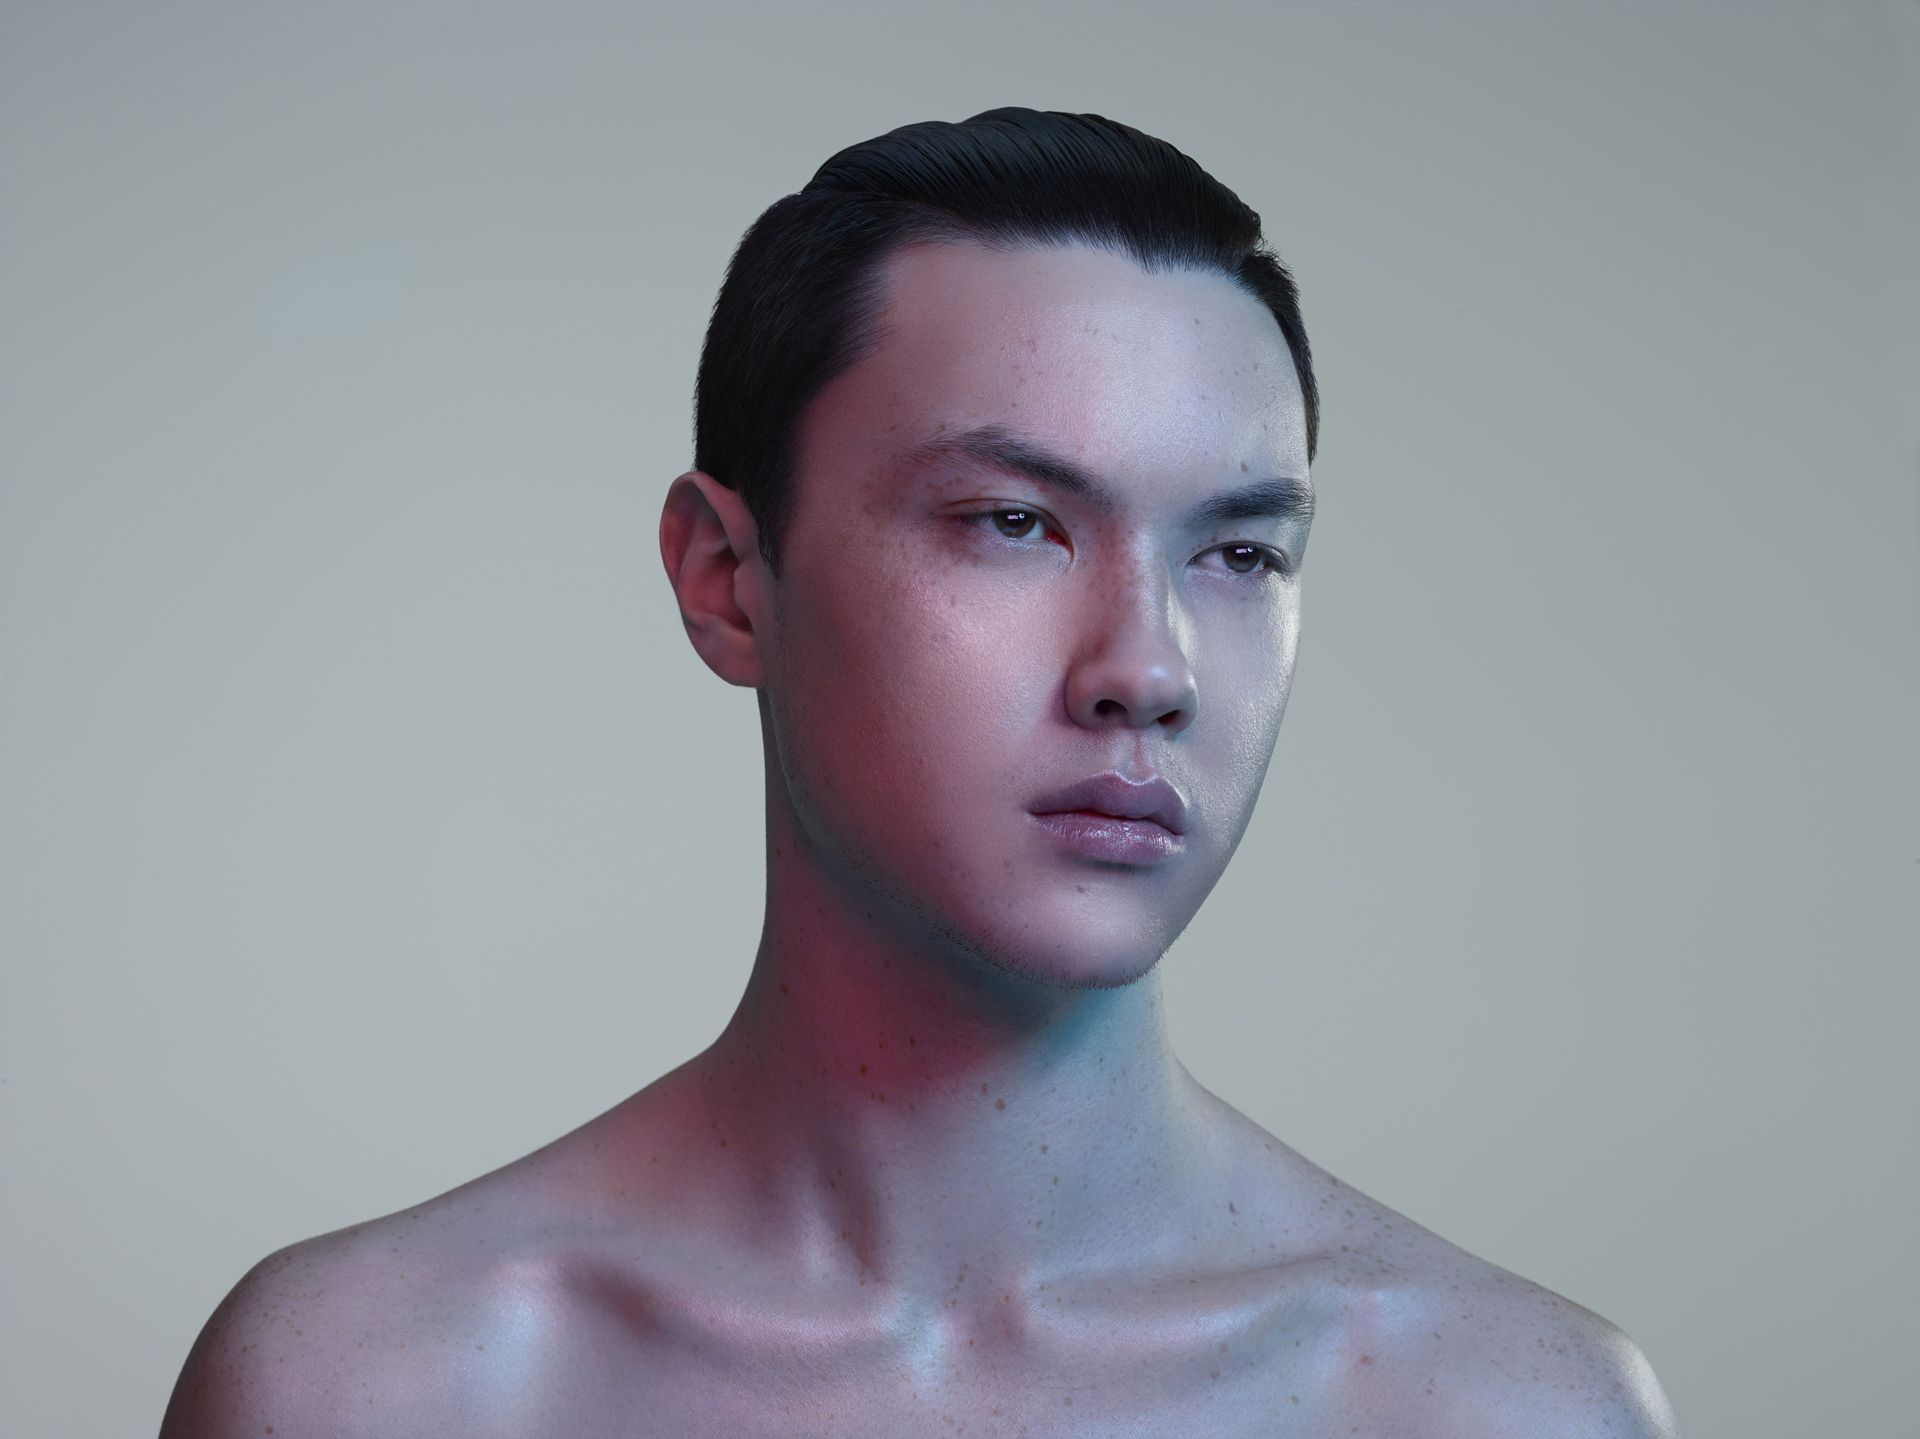 asian man with freckles slicked back black hair looking away from camera in cold coloured lights on light pink background by Simon Duhamel for Skintone